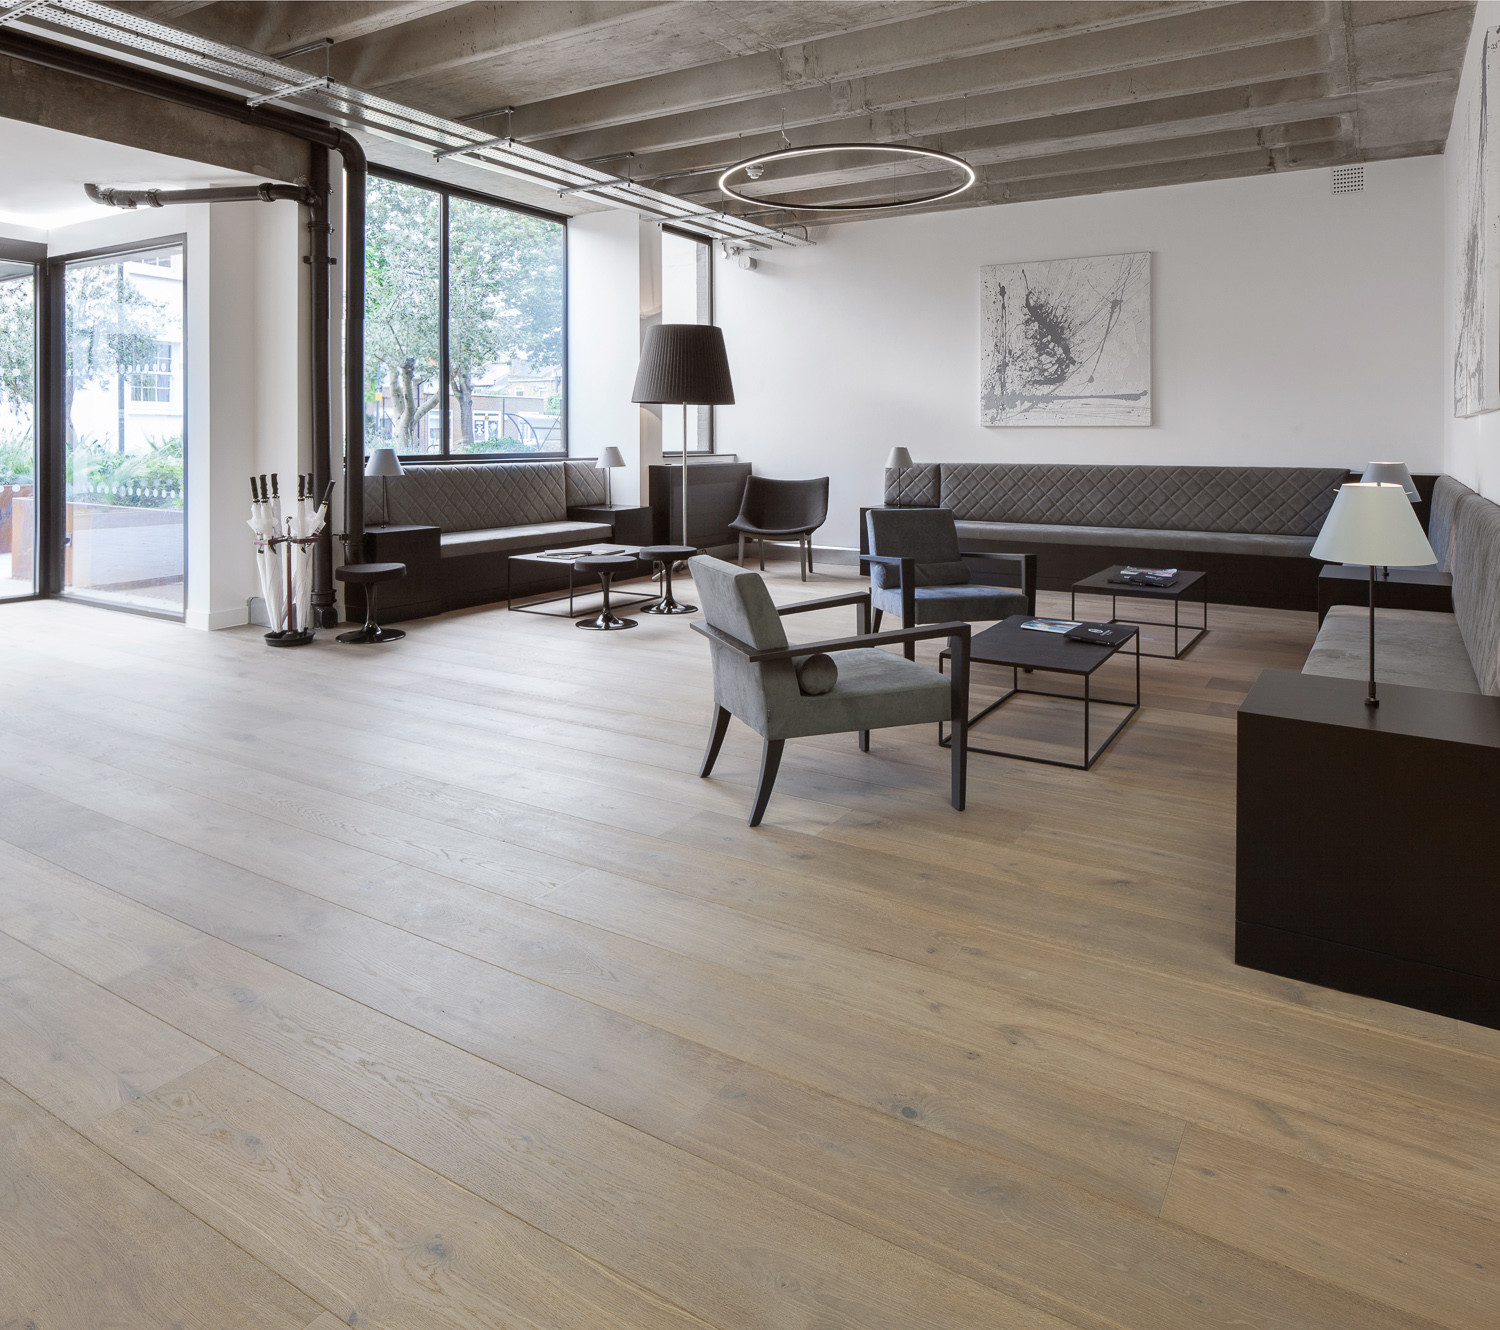 hardwood floor transition from room to hallway of blog archives the new reclaimed flooring companythe new intended for the report indicated that 82 of workers who were employed in places with eight or more wood surfaces had higher personal productivity mood concentration